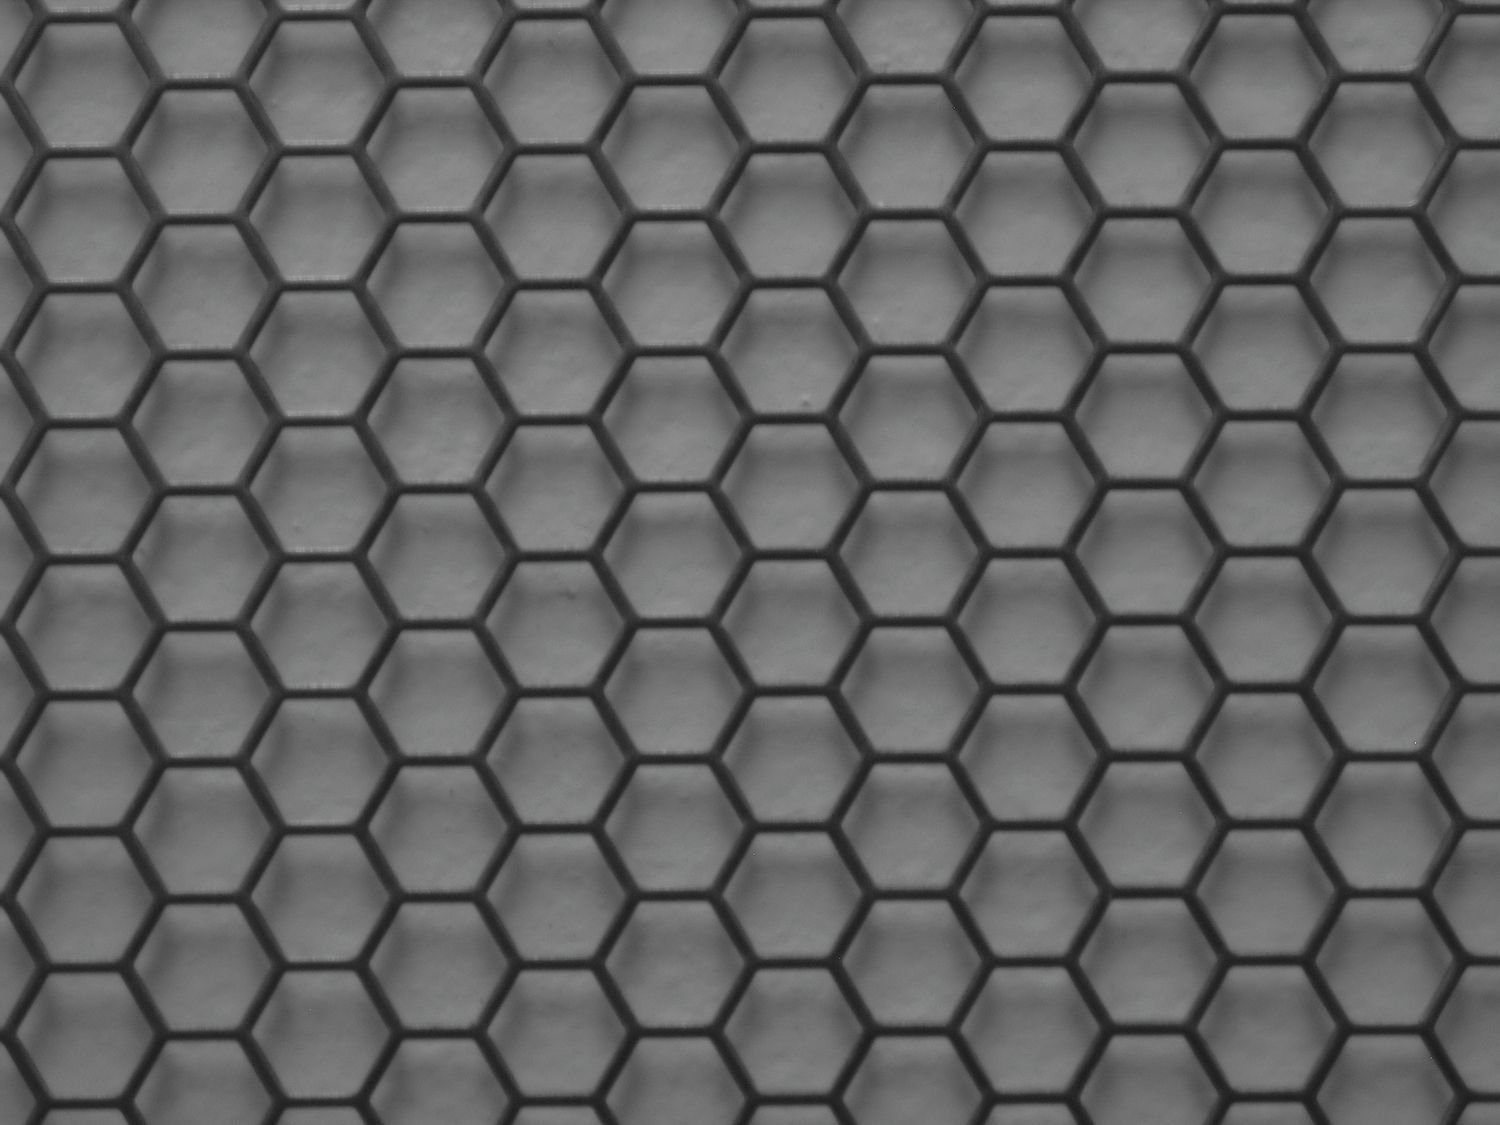 20 Gauge Perforated Sheet Hex Hole Shape Staggered Hole Pattern 06032hex 36x40 Building Supplies Raw Materials Susta Metal Sheet Perforated Metal Sheet